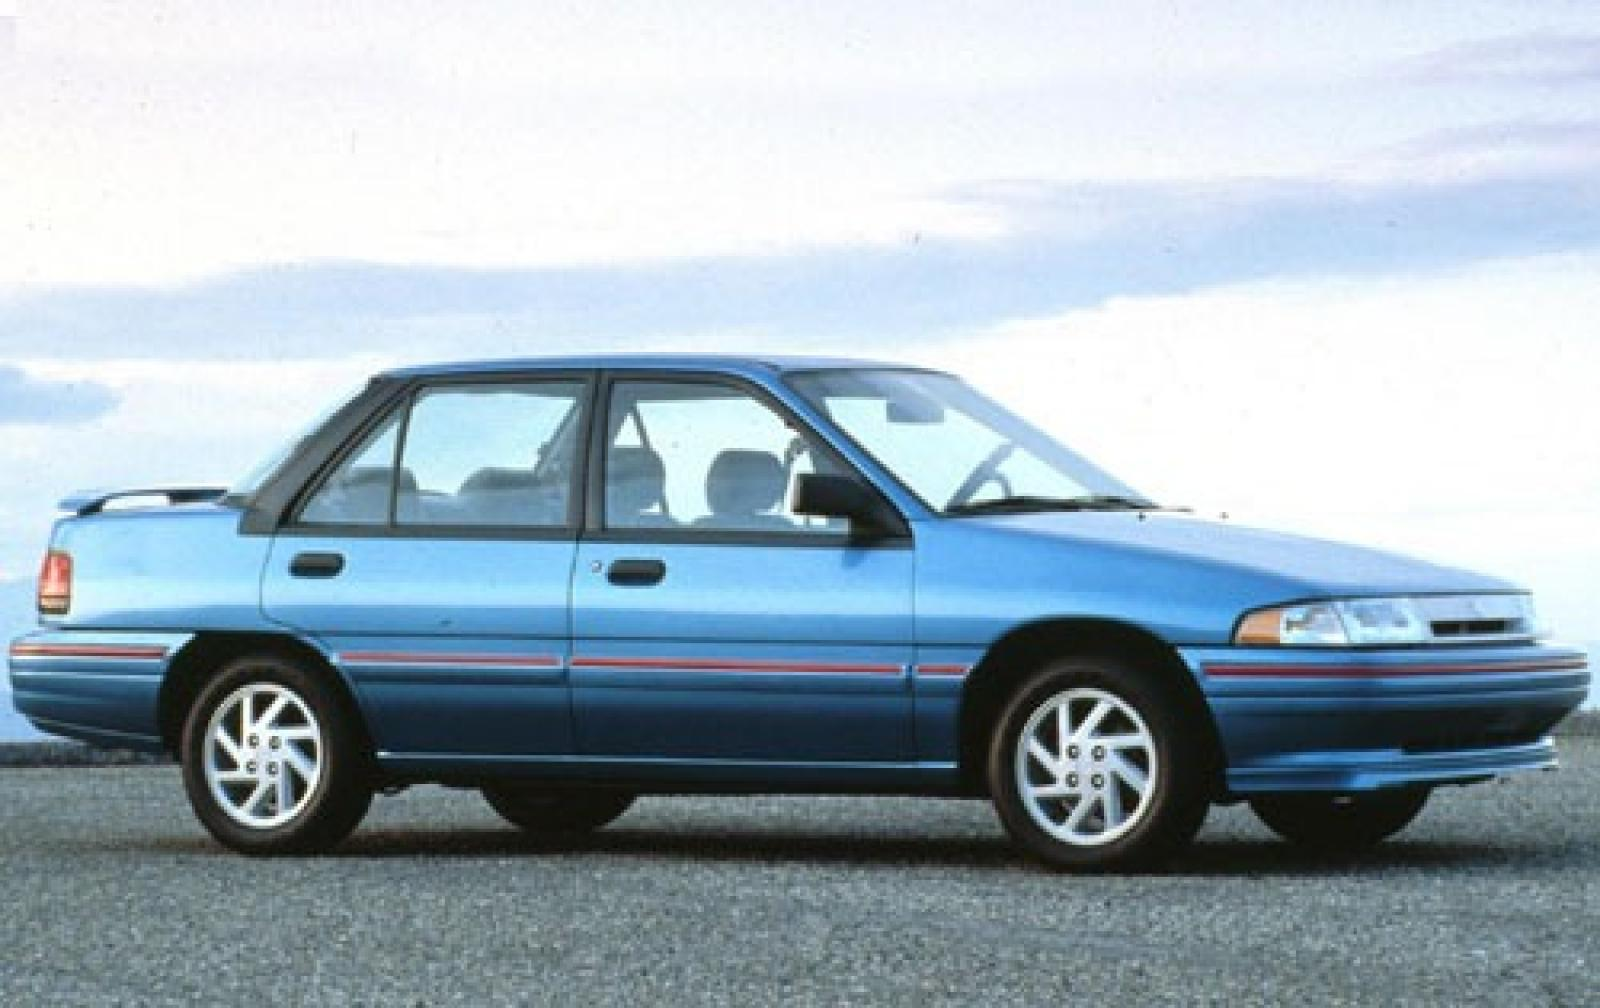 hight resolution of 800 1024 1280 1600 origin 1996 mercury tracer